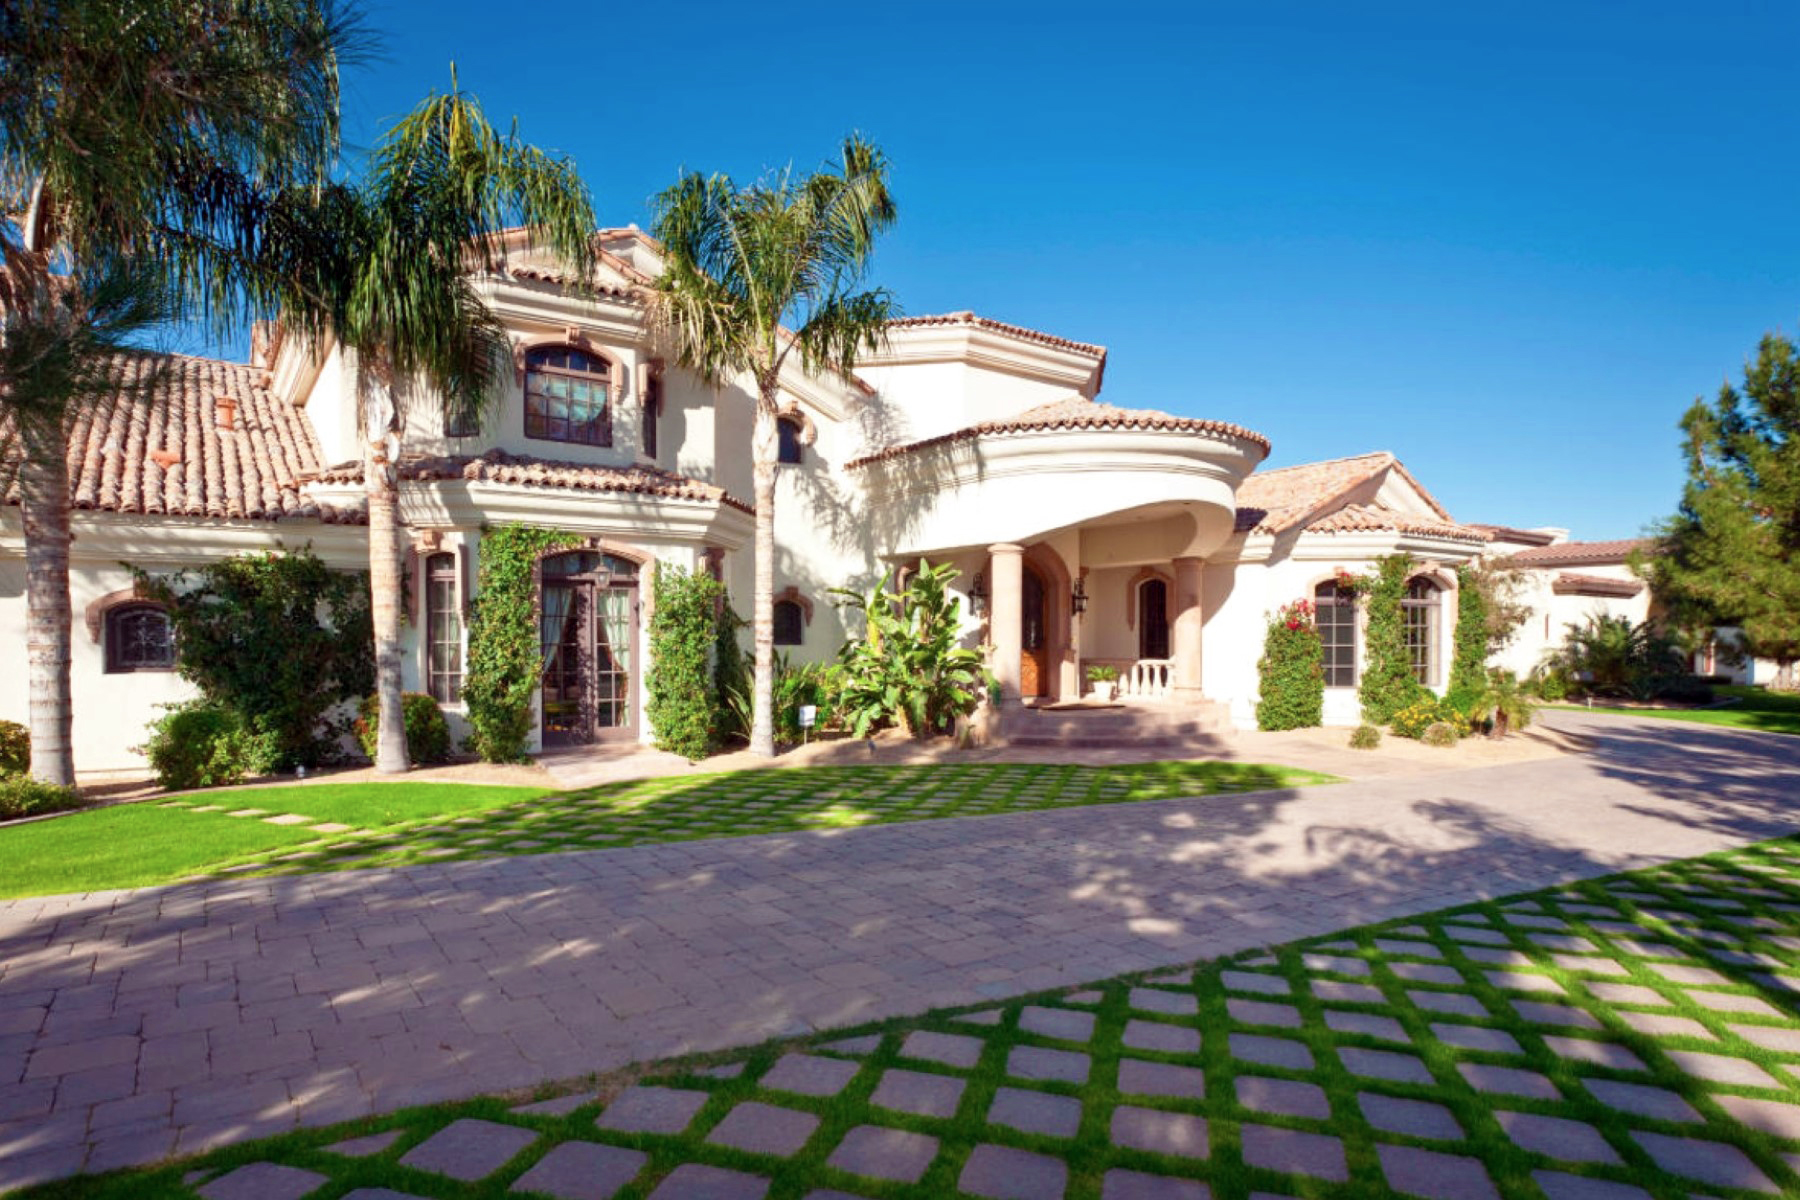 独户住宅 为 销售 在 Extraordinary Masterpiece in Camelback Country Estates 8812 N 65th Street Paradise Valley, 亚利桑那州 85253 美国